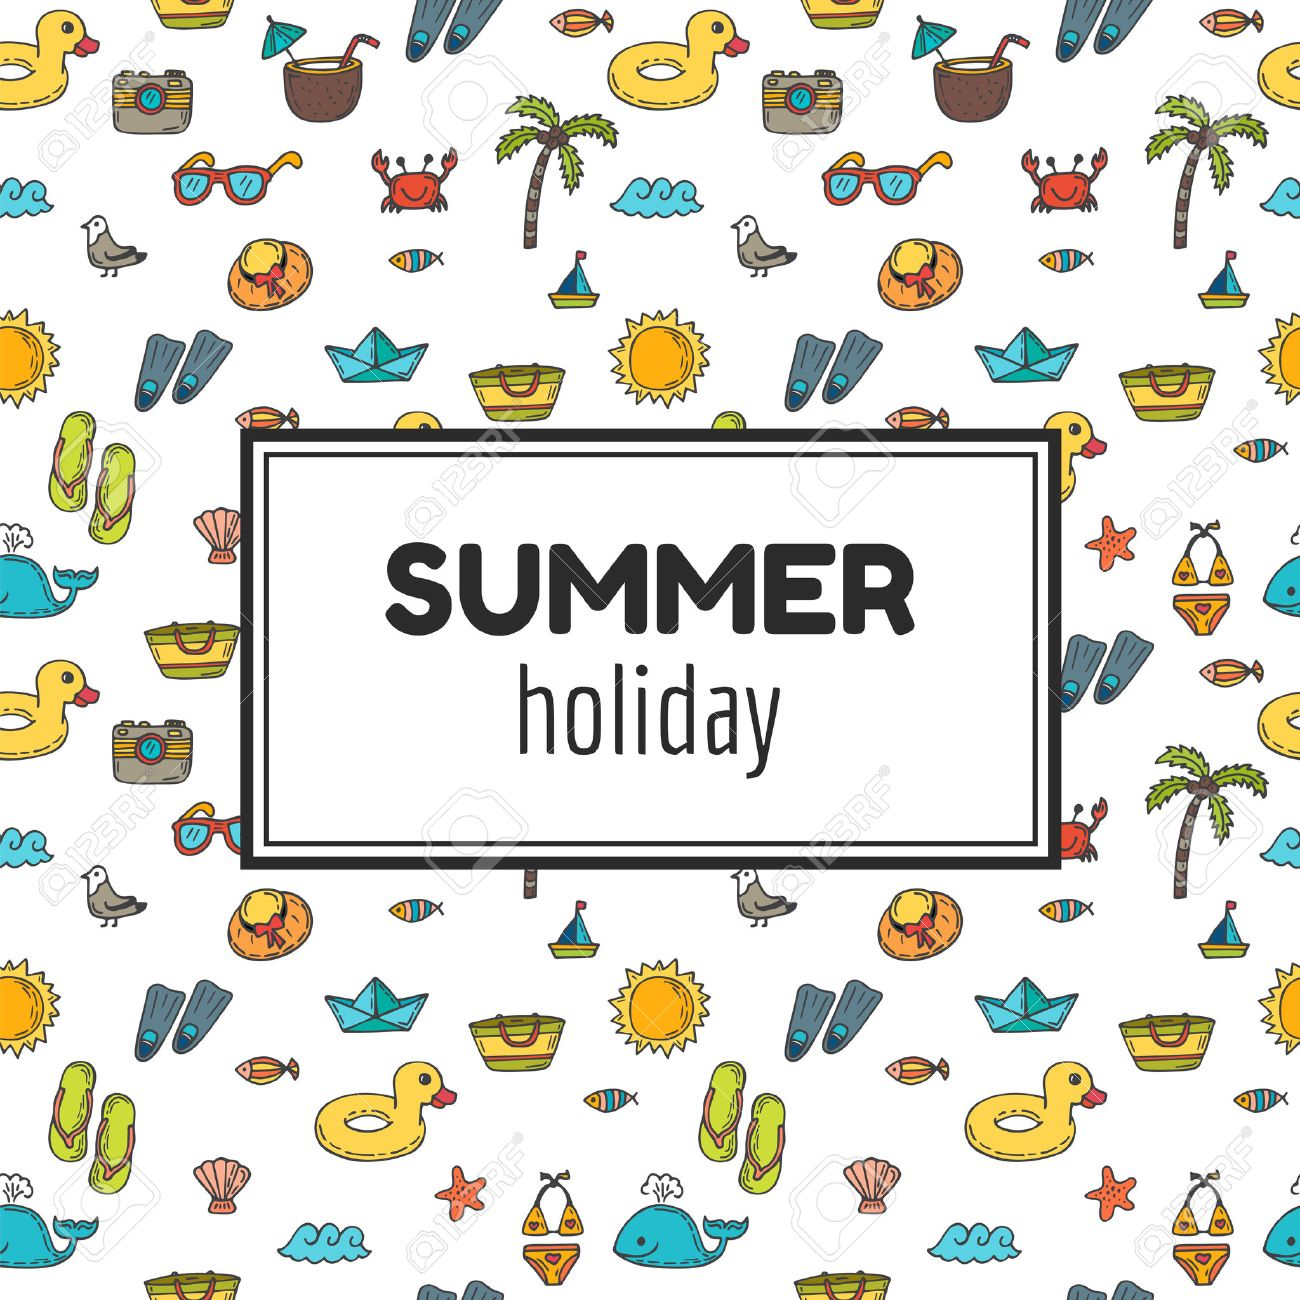 Summer holiday. Summer tropical vacation background. Cute hand drawn greeting card. Vector illustration - 55012373